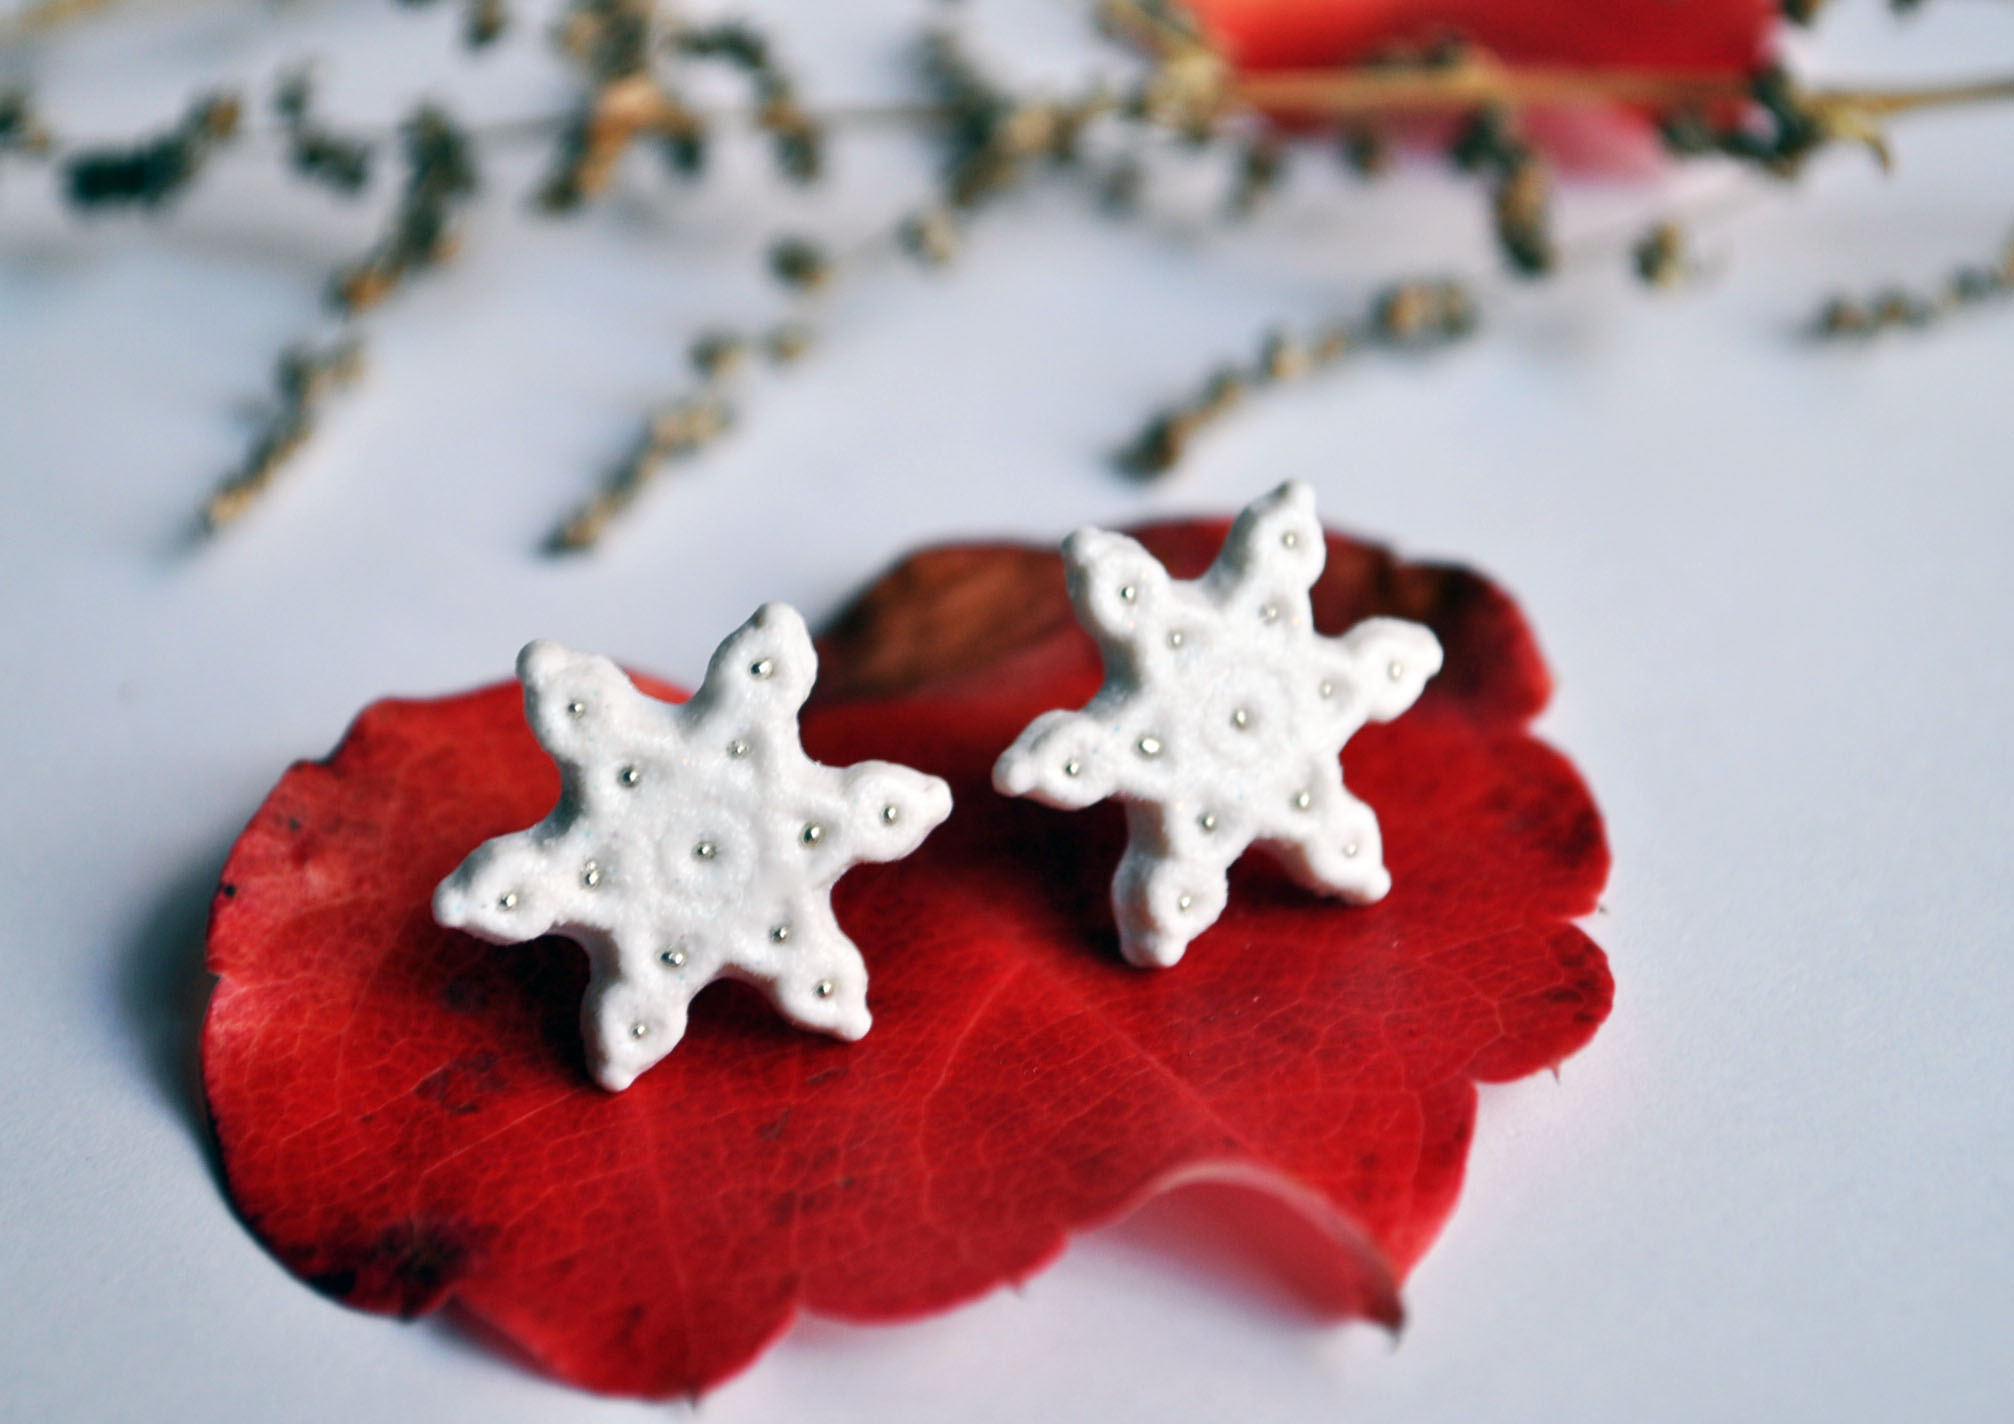 http://afuahandmade.storenvy.com/collections/34543-earrings/products/3872554-snowflake-stud-earrings